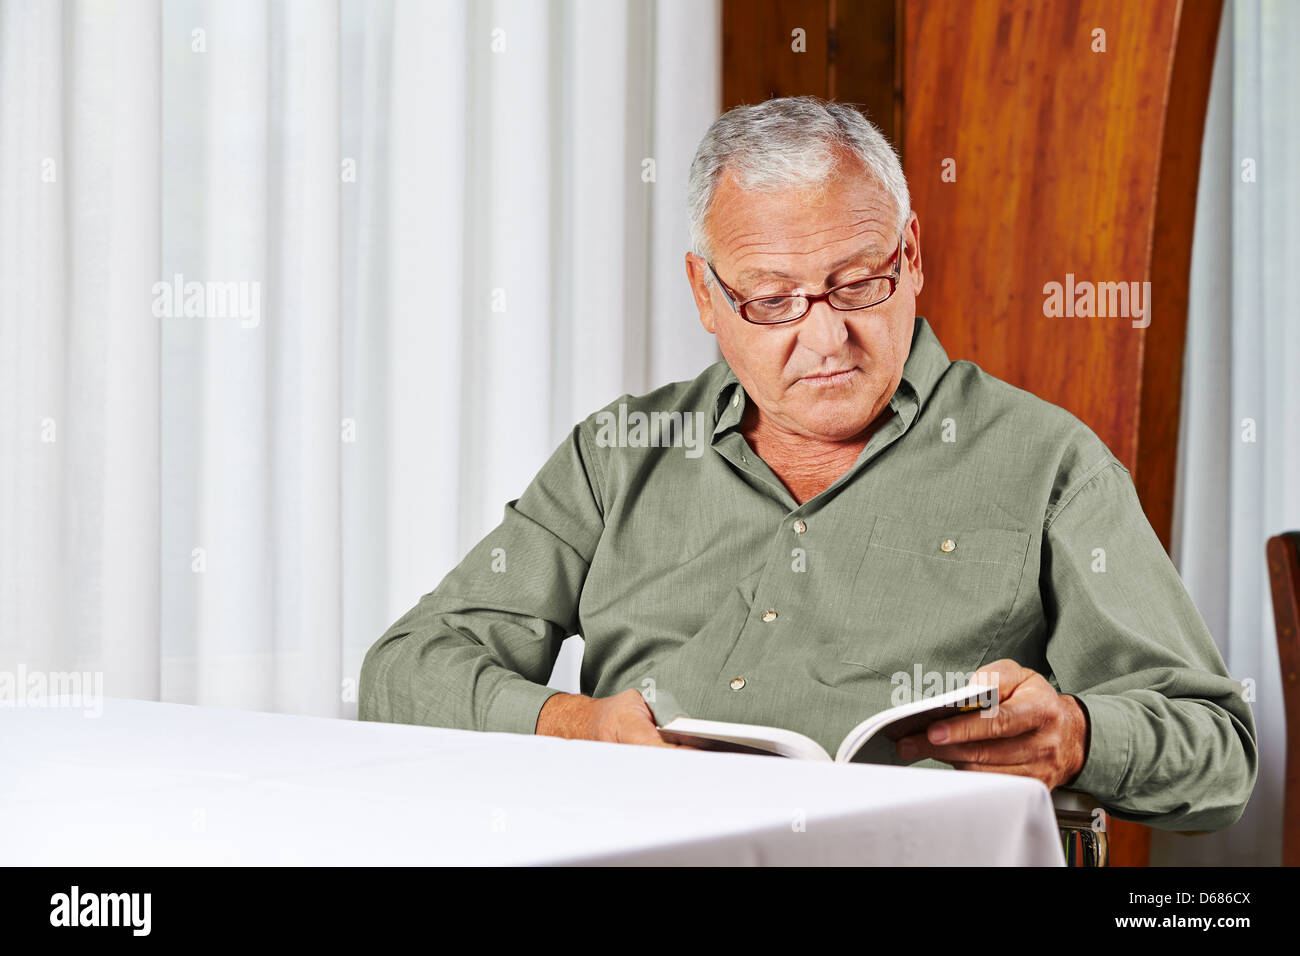 Senior man in rest home reading a book with reading glasses - Stock Image